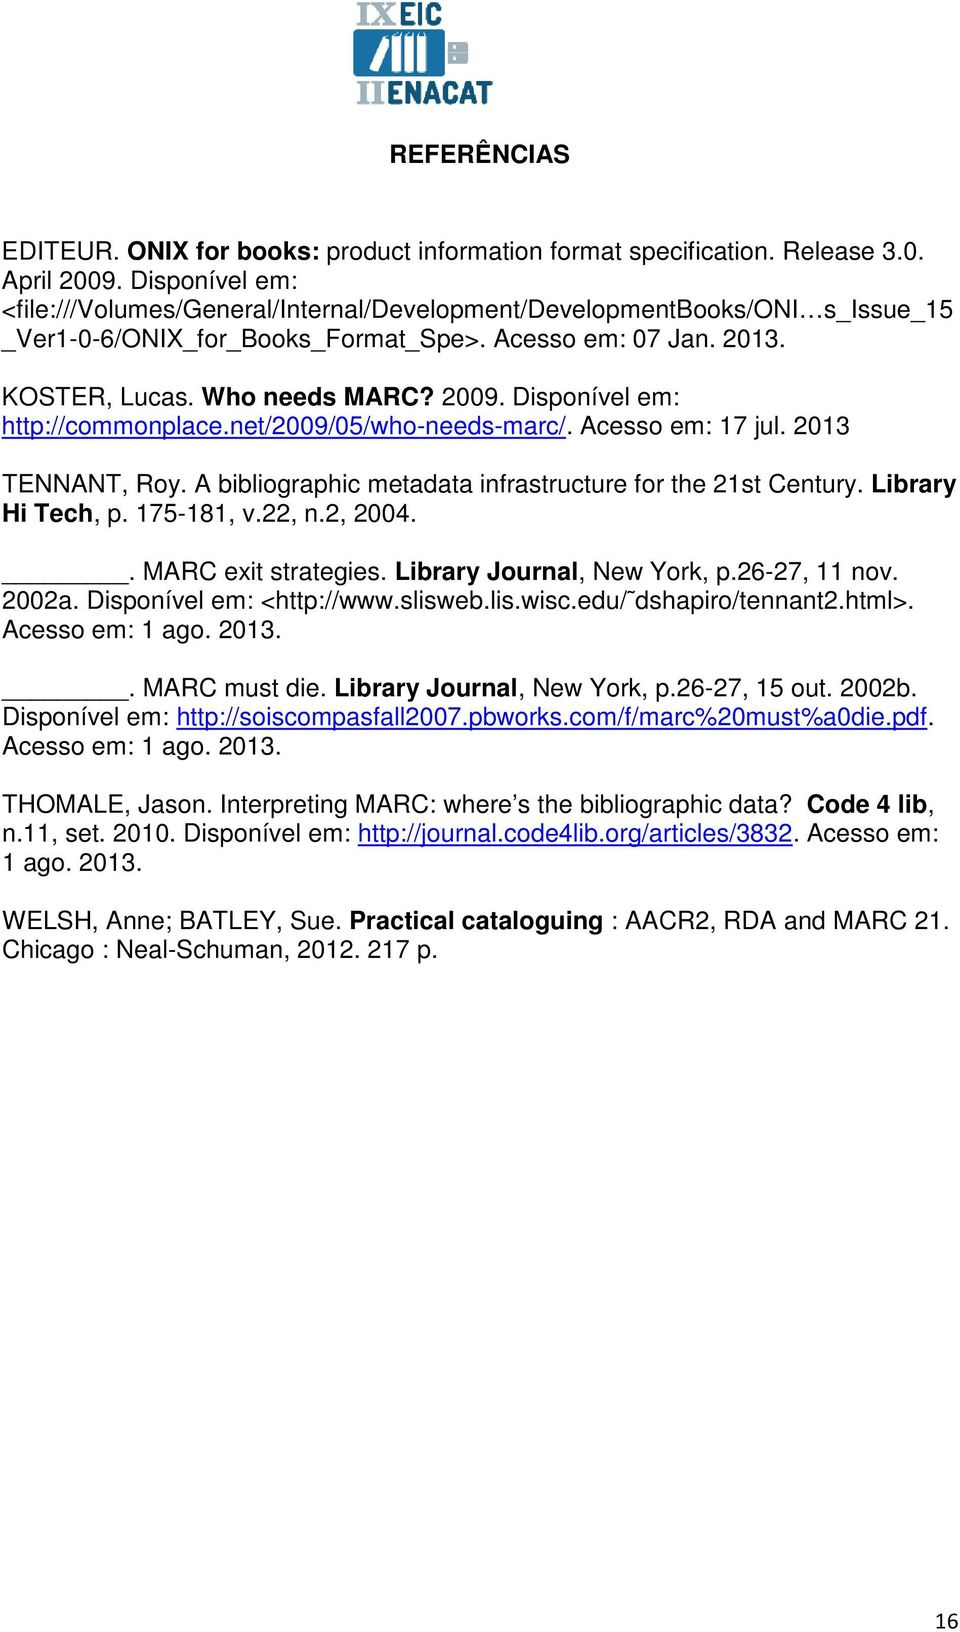 Disponível em: http://commonplace.net/2009/05/who-needs-marc/. Acesso em: 17 jul. 2013 TENNANT, Roy. A bibliographic metadata infrastructure for the 21st Century. Library Hi Tech, p. 175-181, v.22, n.